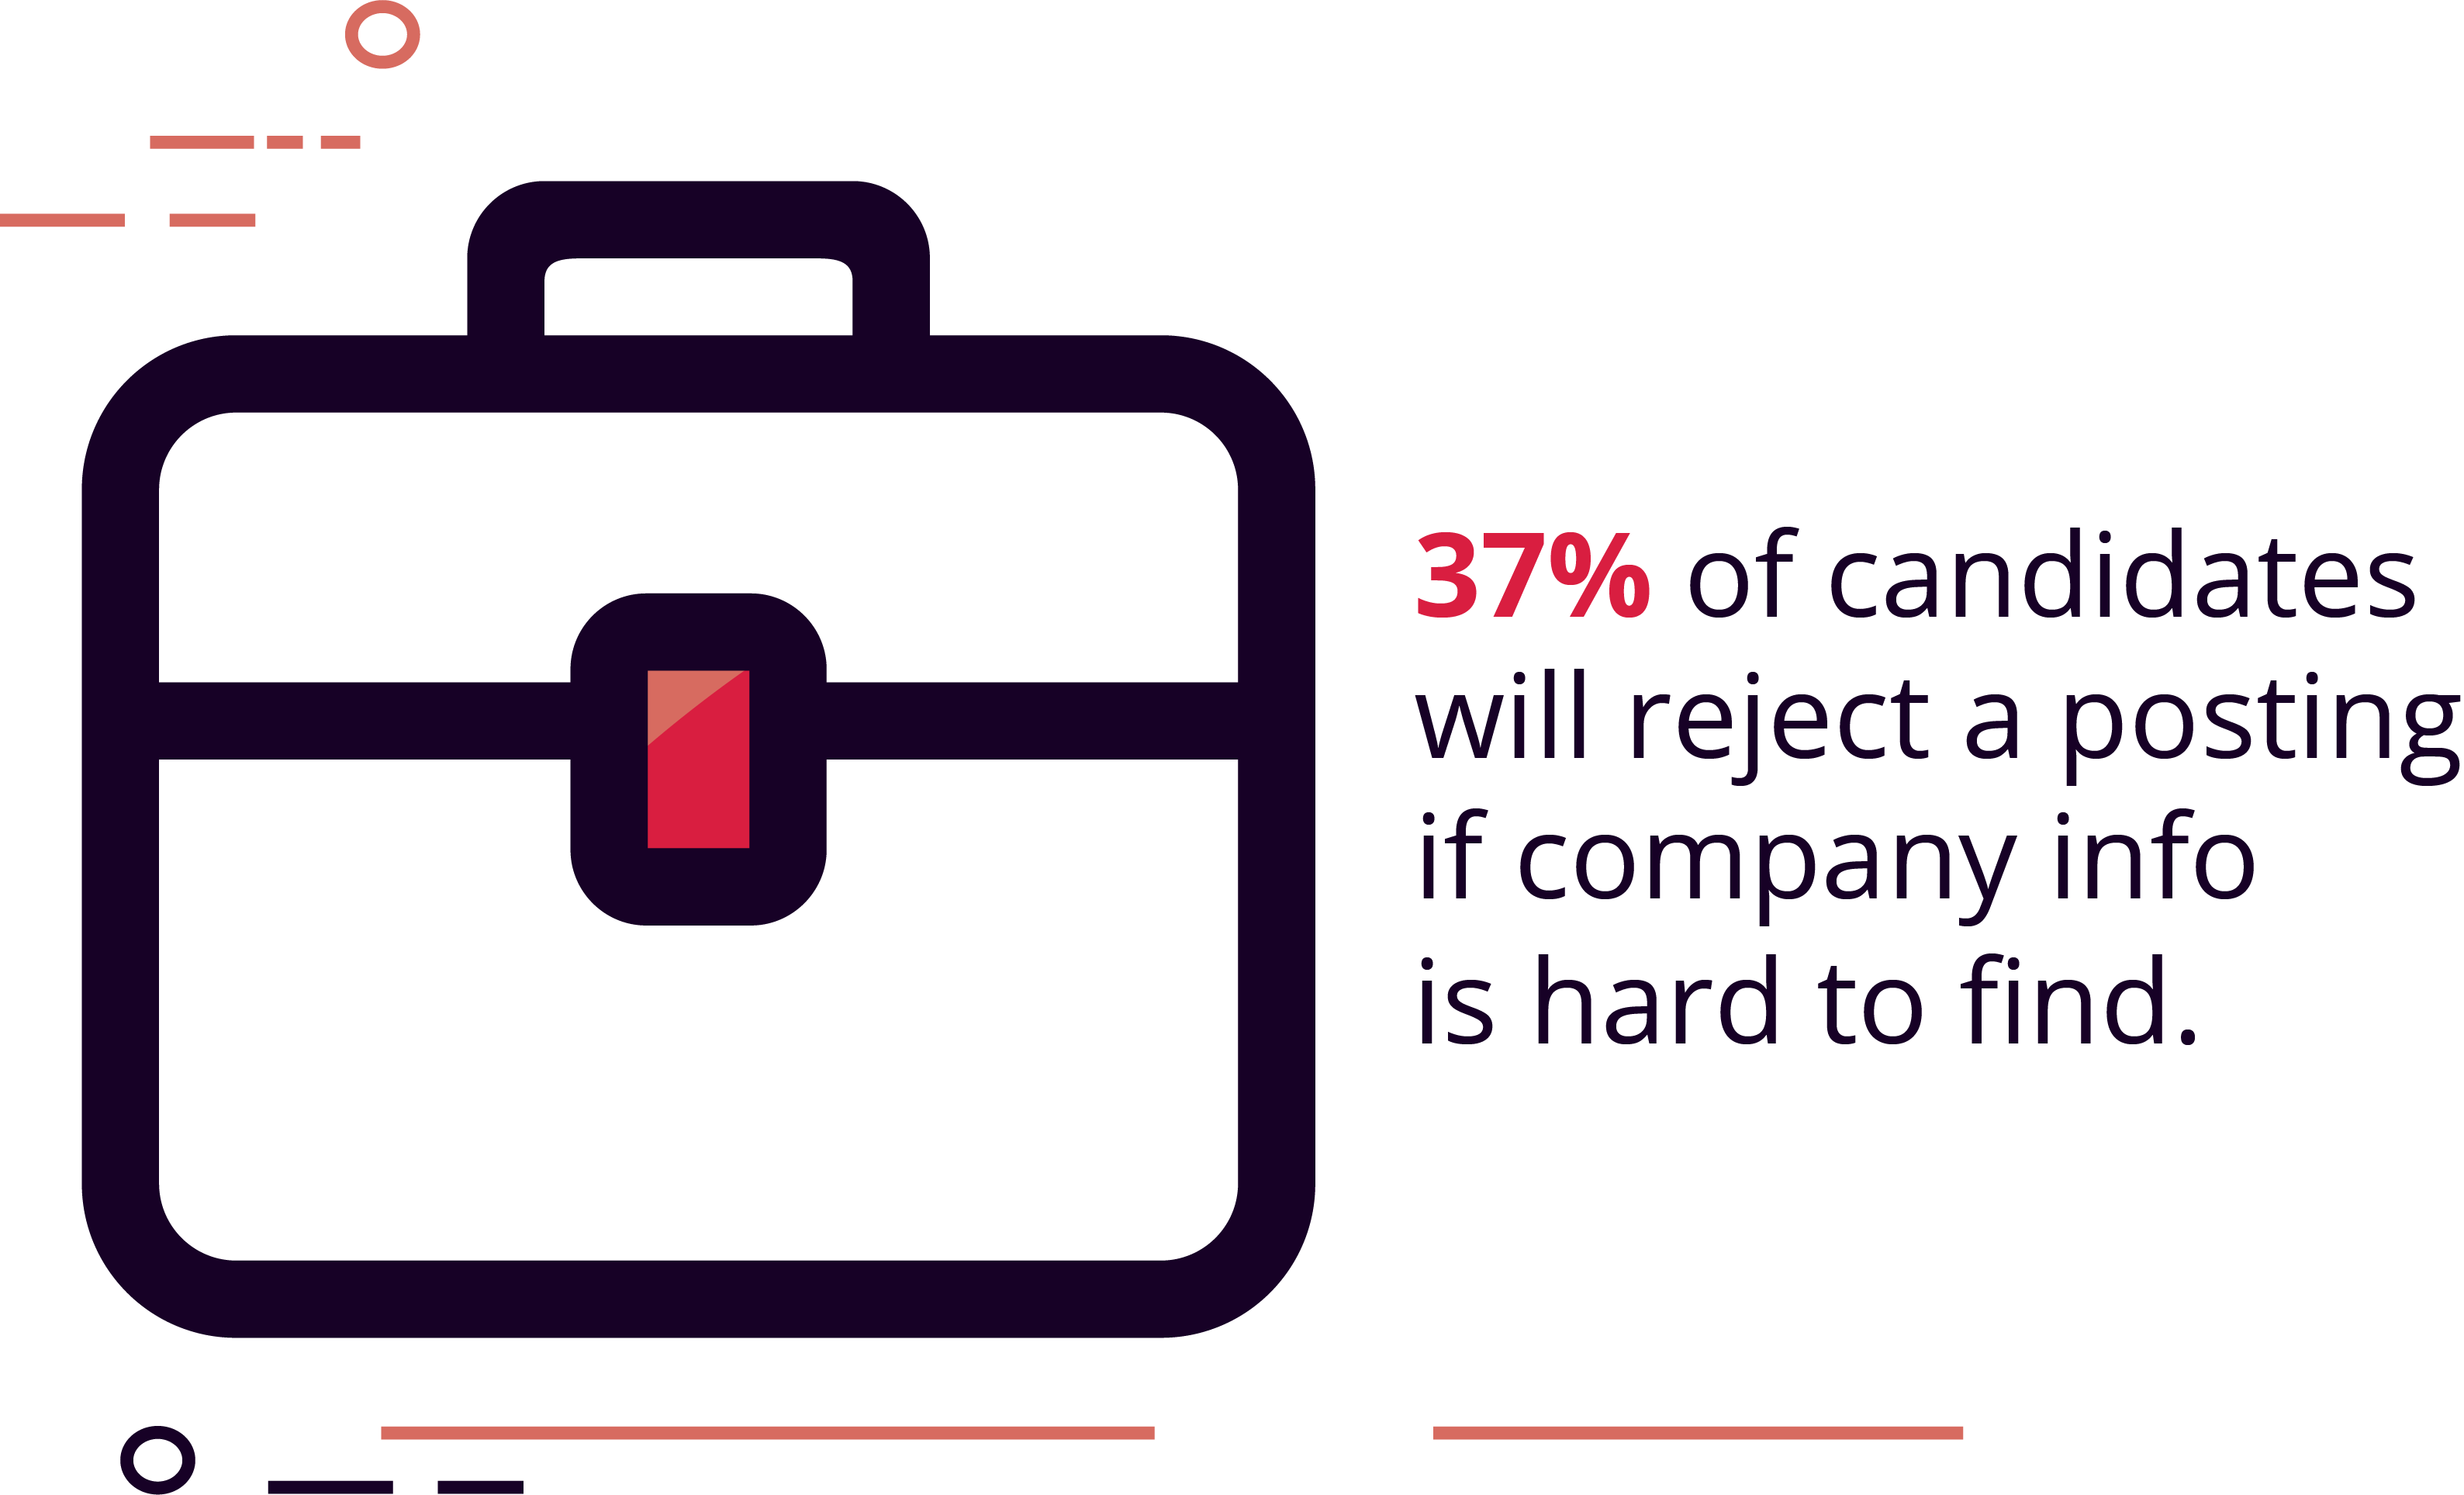 37% of candidates will reject a posting if company information is hard to find